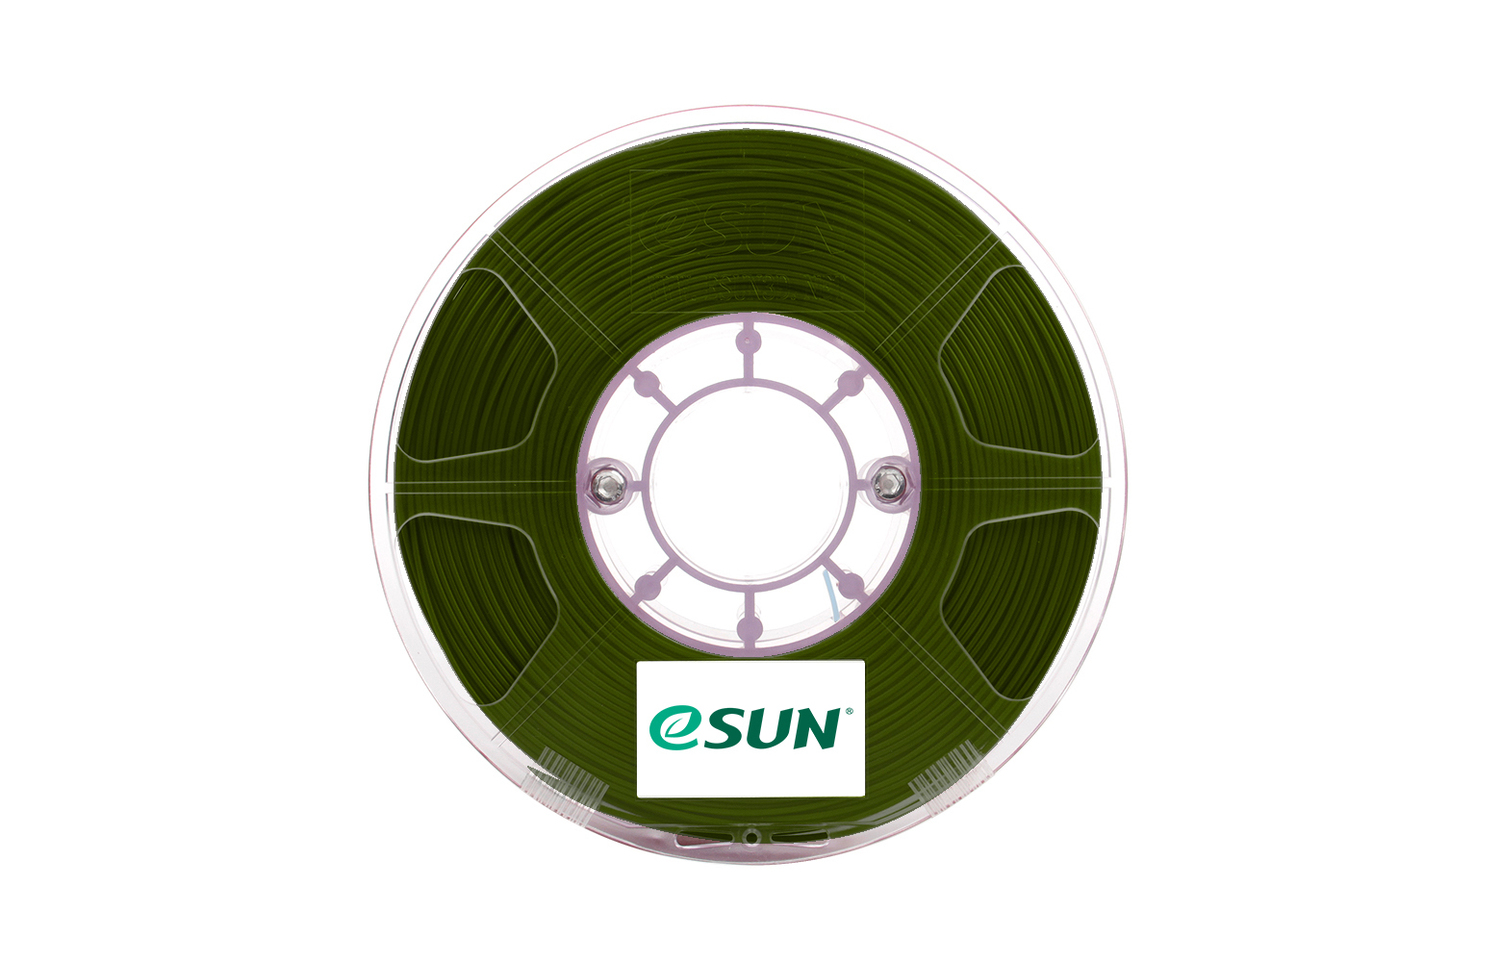 eSUN PLA+ Olive Green 1.75mm 1KG (Out of Stock)